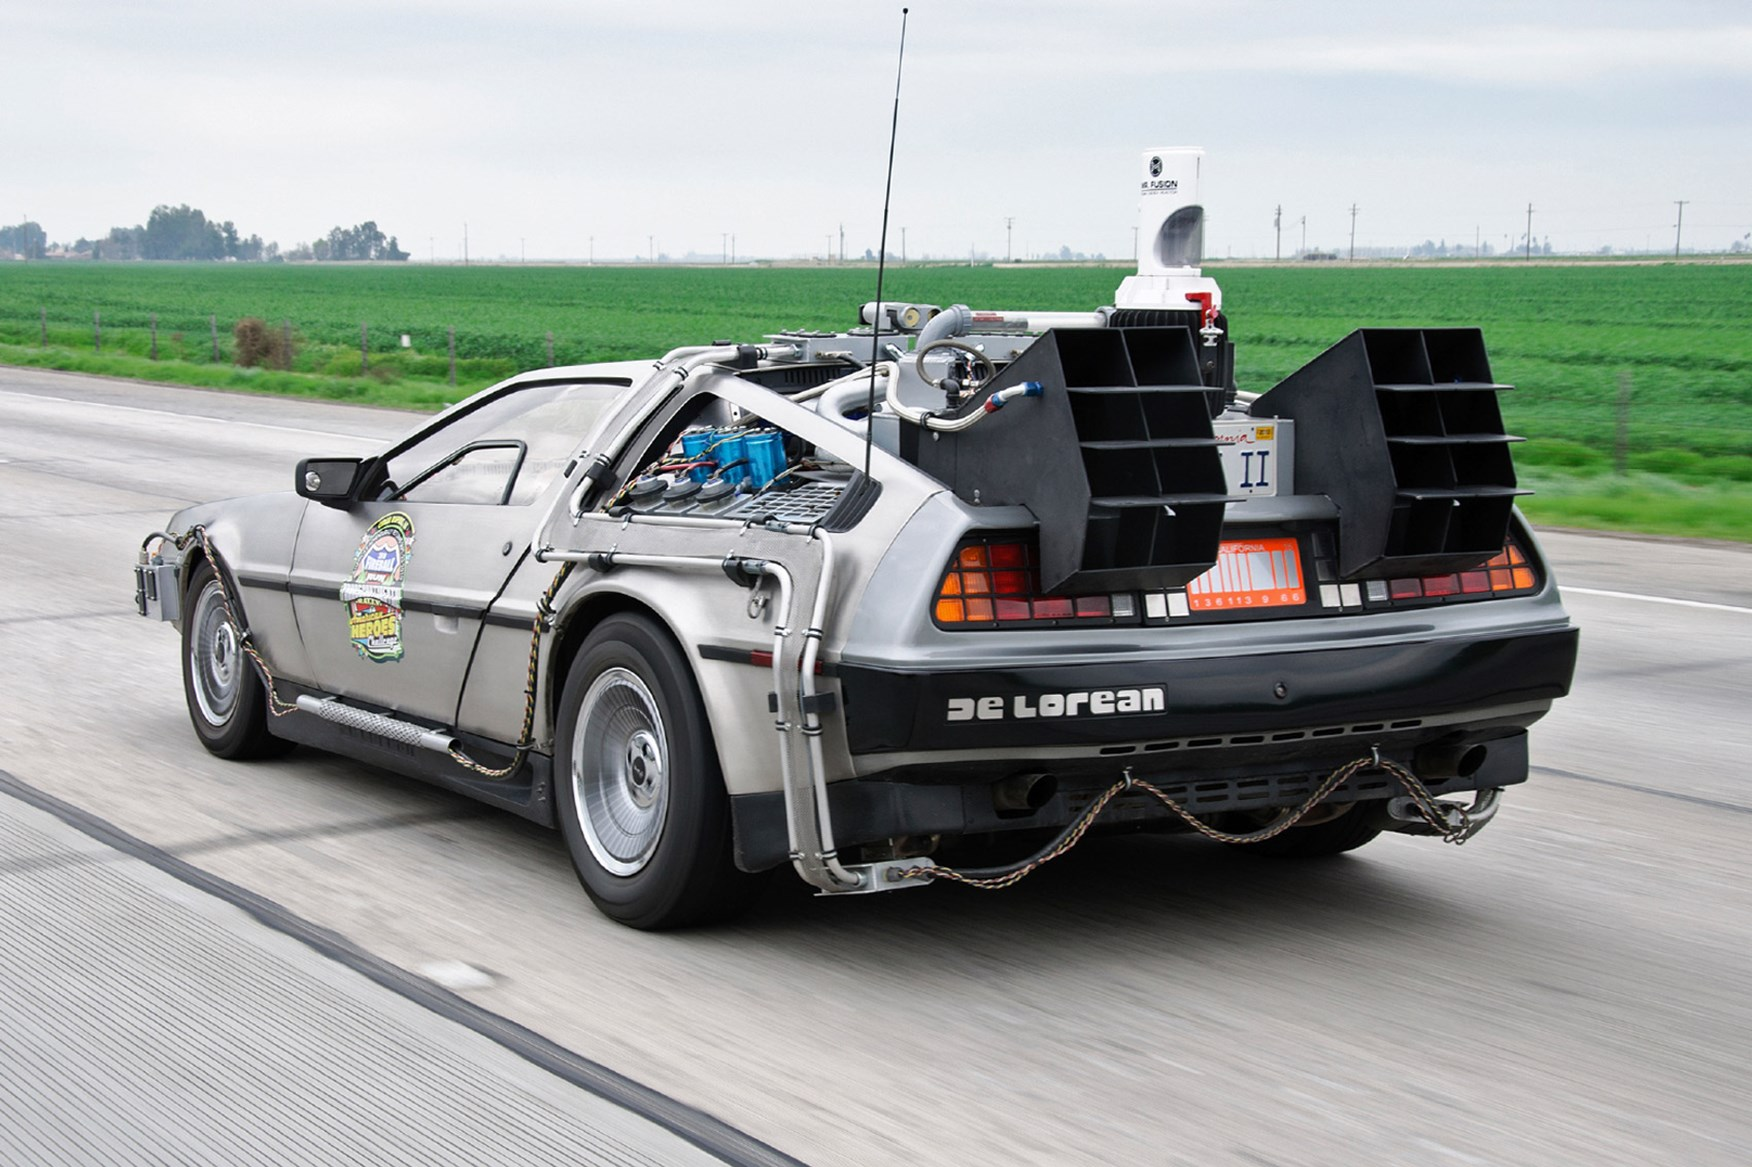 000000delorean-10.jpg?mode=max&quality=9